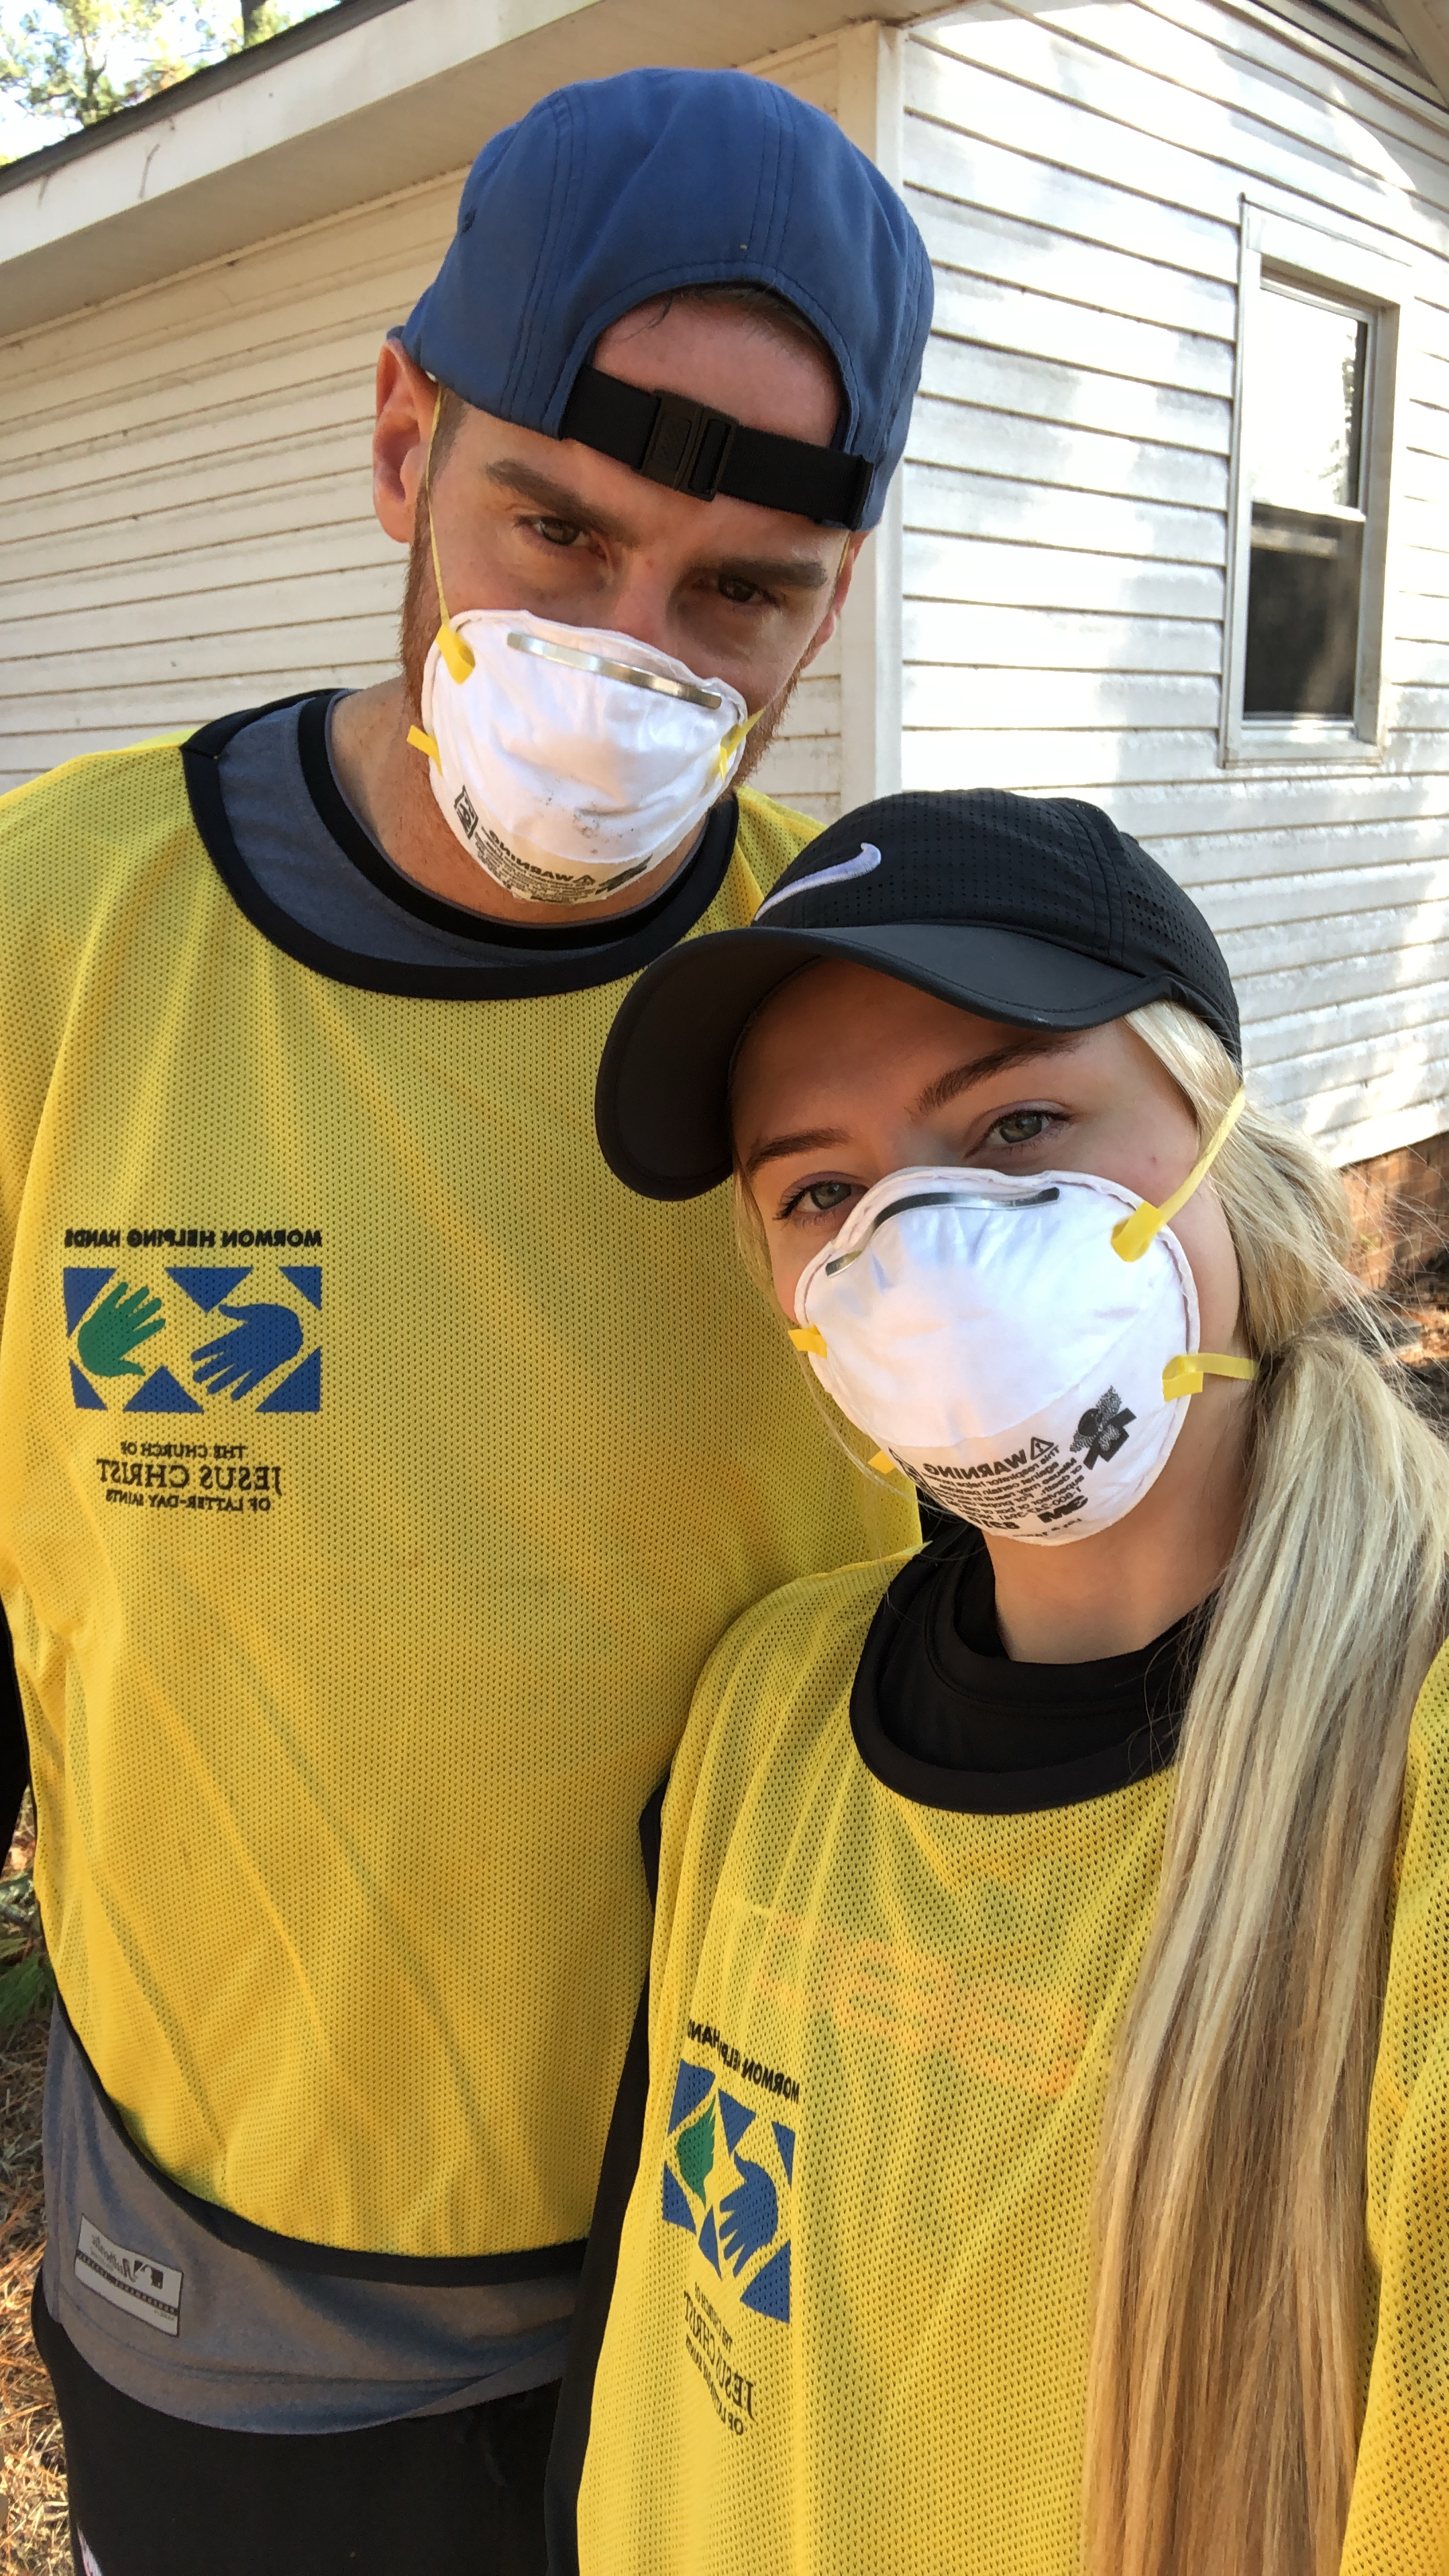 Former BYU athletes Mitch and Madie Mathews donned masks and yellow Helping Hands vests during a recent cleanup project in Wilmington, North Carolina.